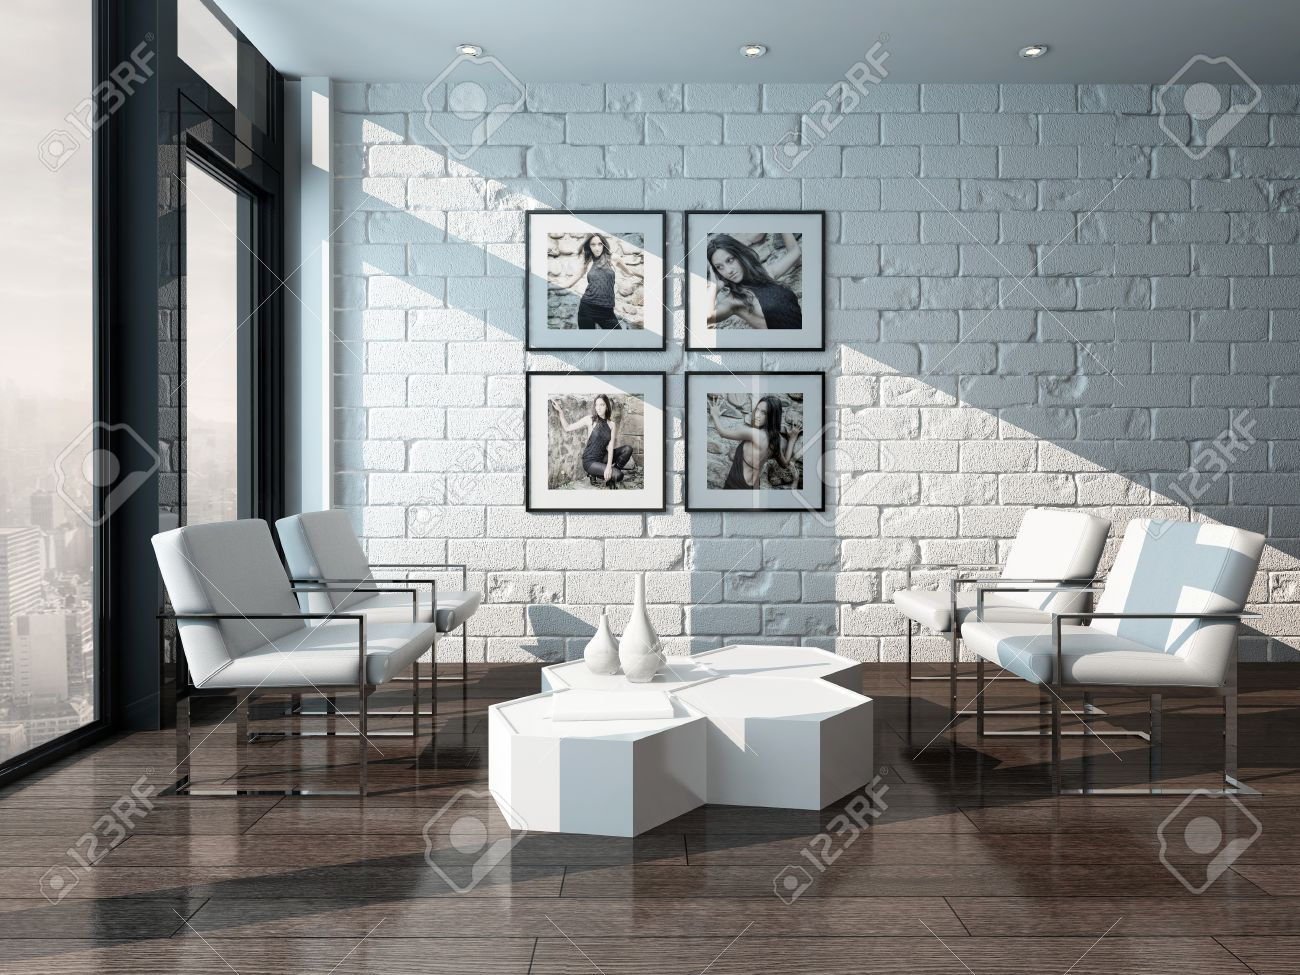 Picture Of Minimalist Living Room Interior With White Brick Wall Stock Photo Picture And Royalty Free Image Image 28685637